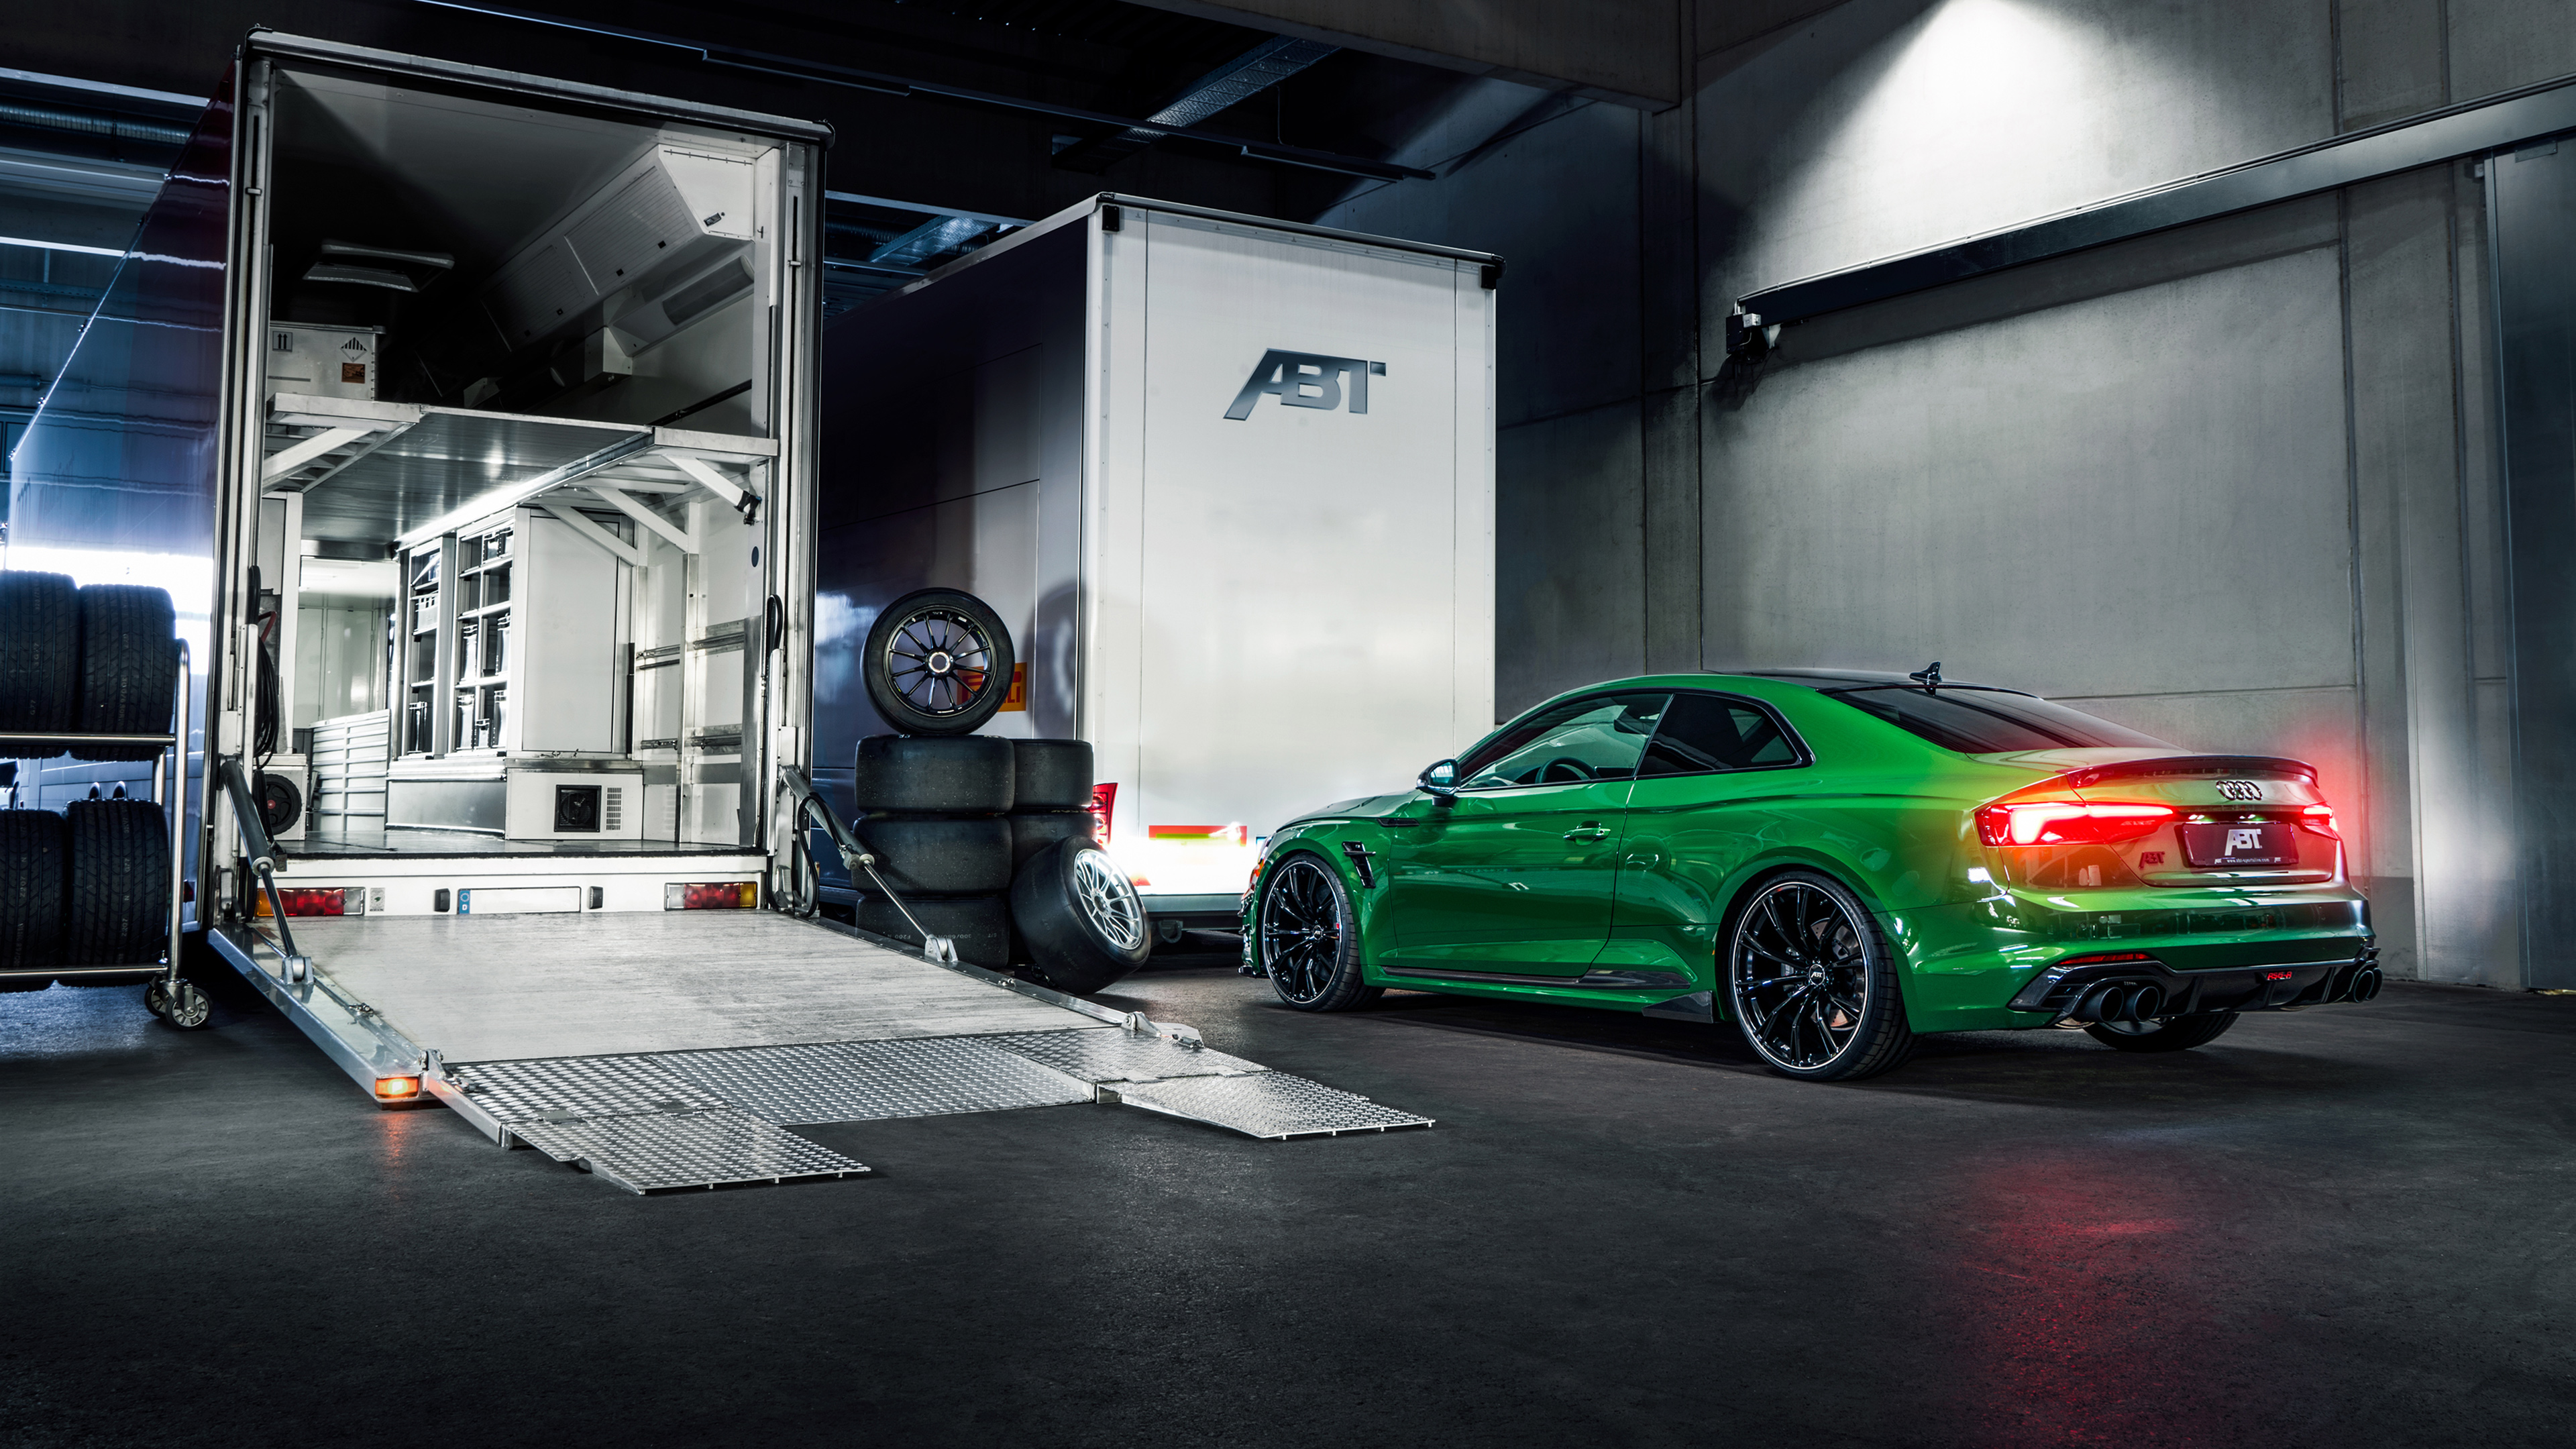 2018 ABT Audi RS 5 R Coupe 4K 2 Wallpaper | HD Car ...